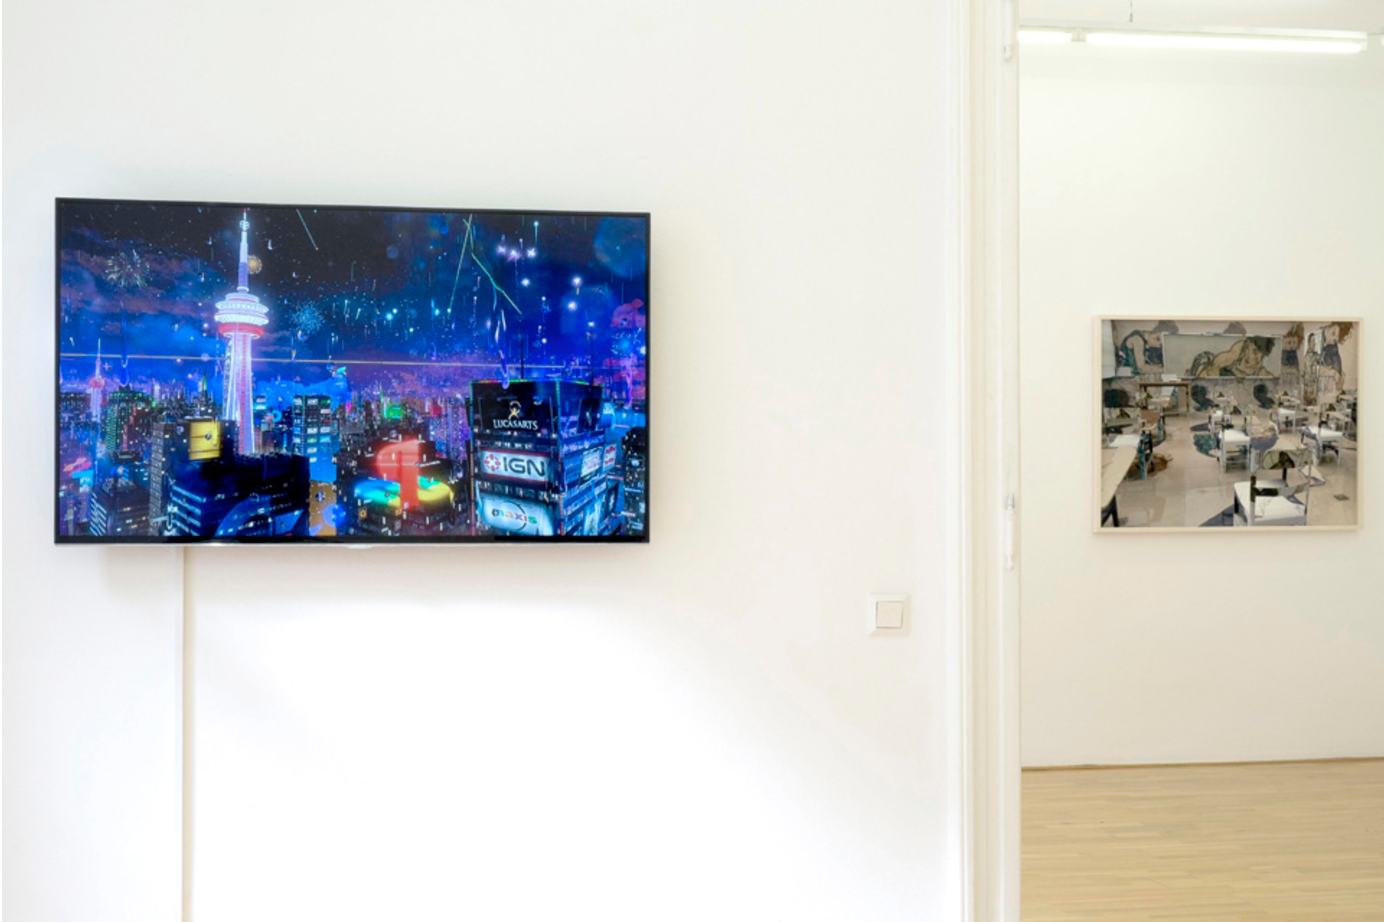 Instrumental Assistance curated by_Kristina Scepanski, Exhibition View, Galerie Andreas Huber, 2014, Photo: Karl Kühn